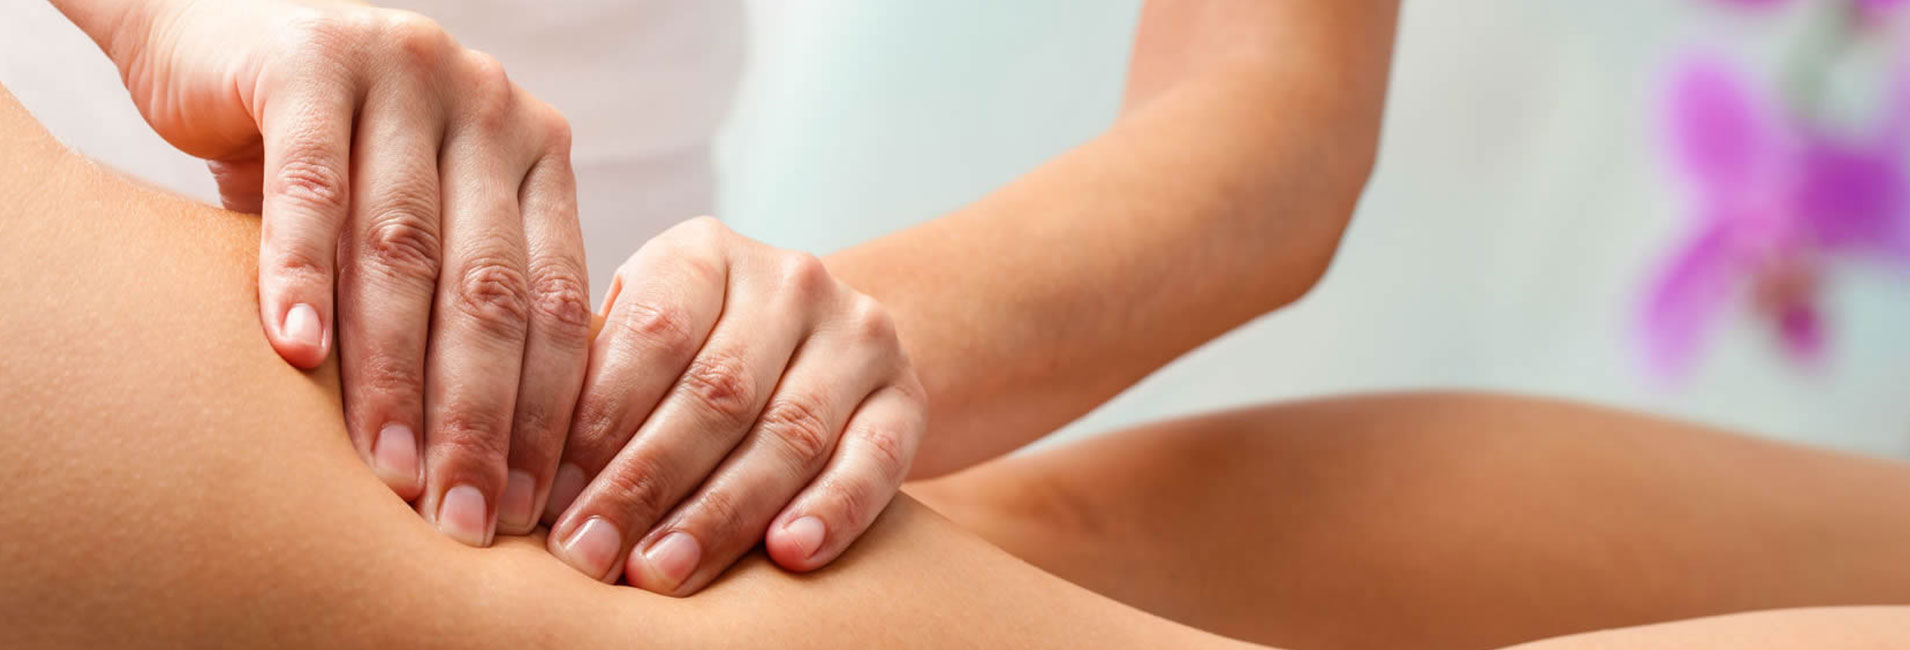 Anti Cellulite massages